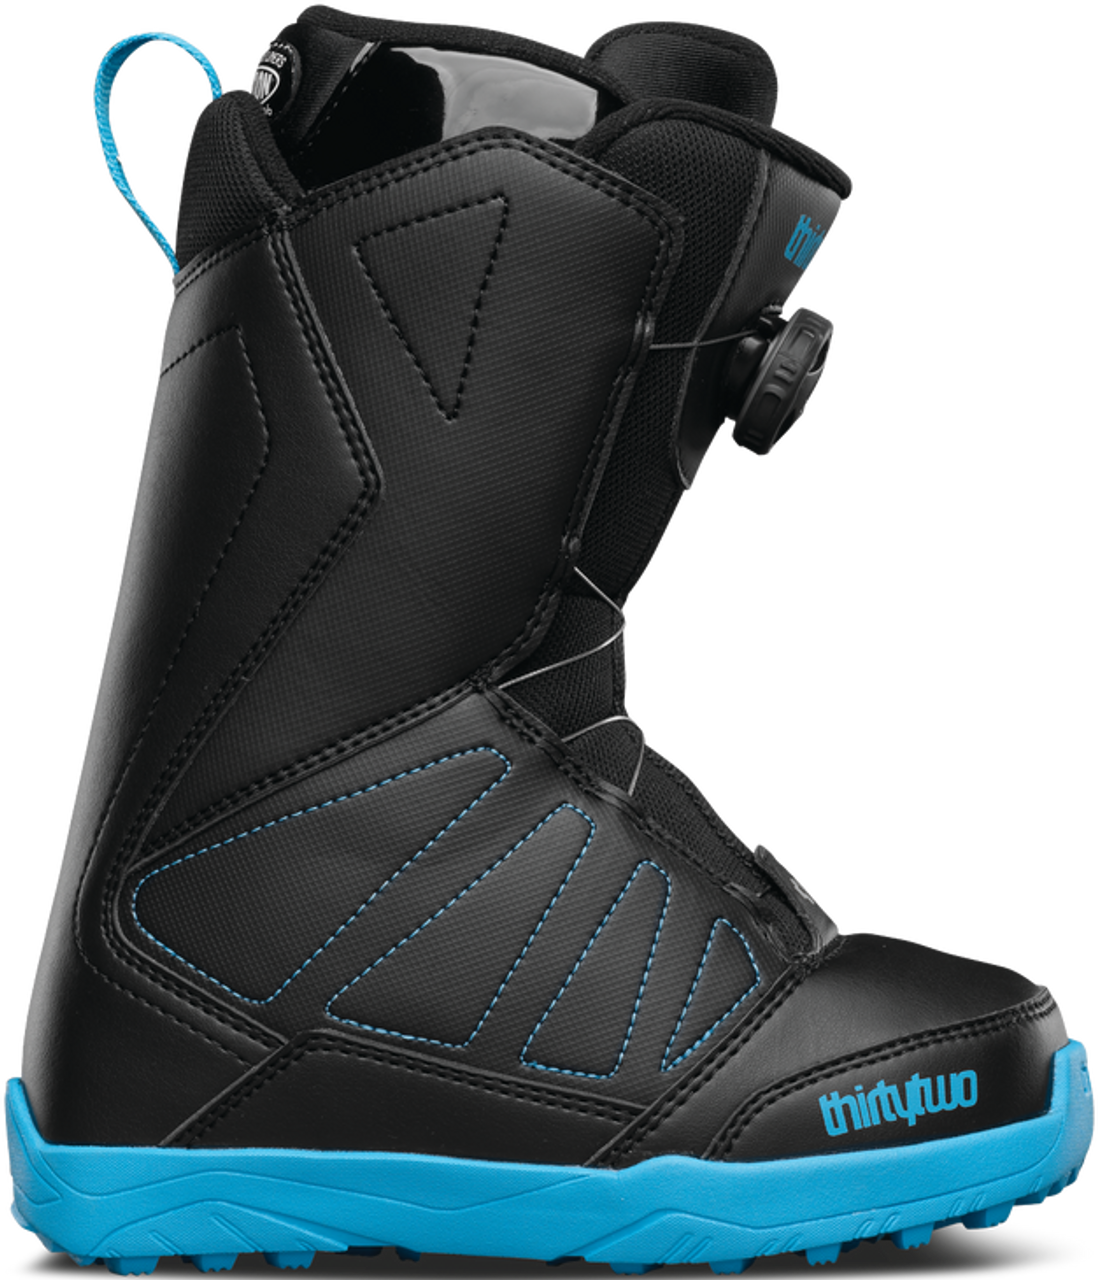 Thirty-Two Youth Lashed BOA Snowboard Boot 2017 - Gear West Ski and Run 466c70ea35c1